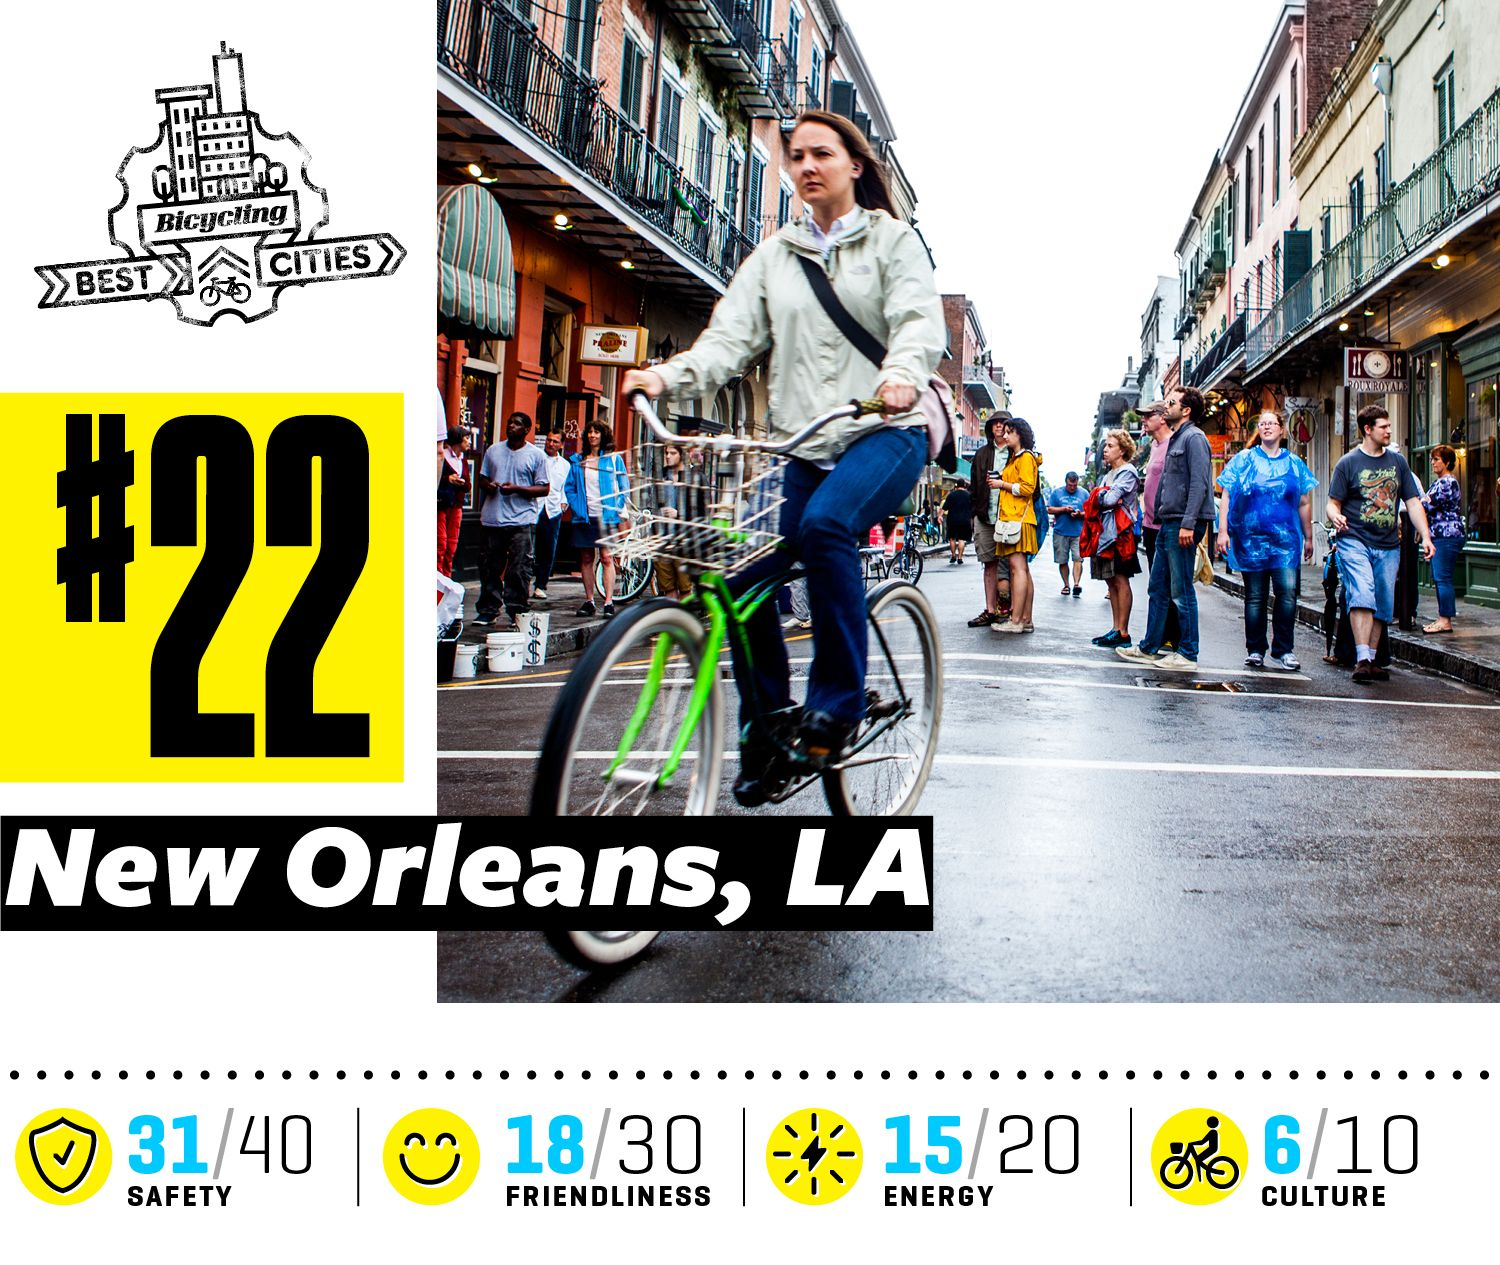 The Best Bike Cities in America